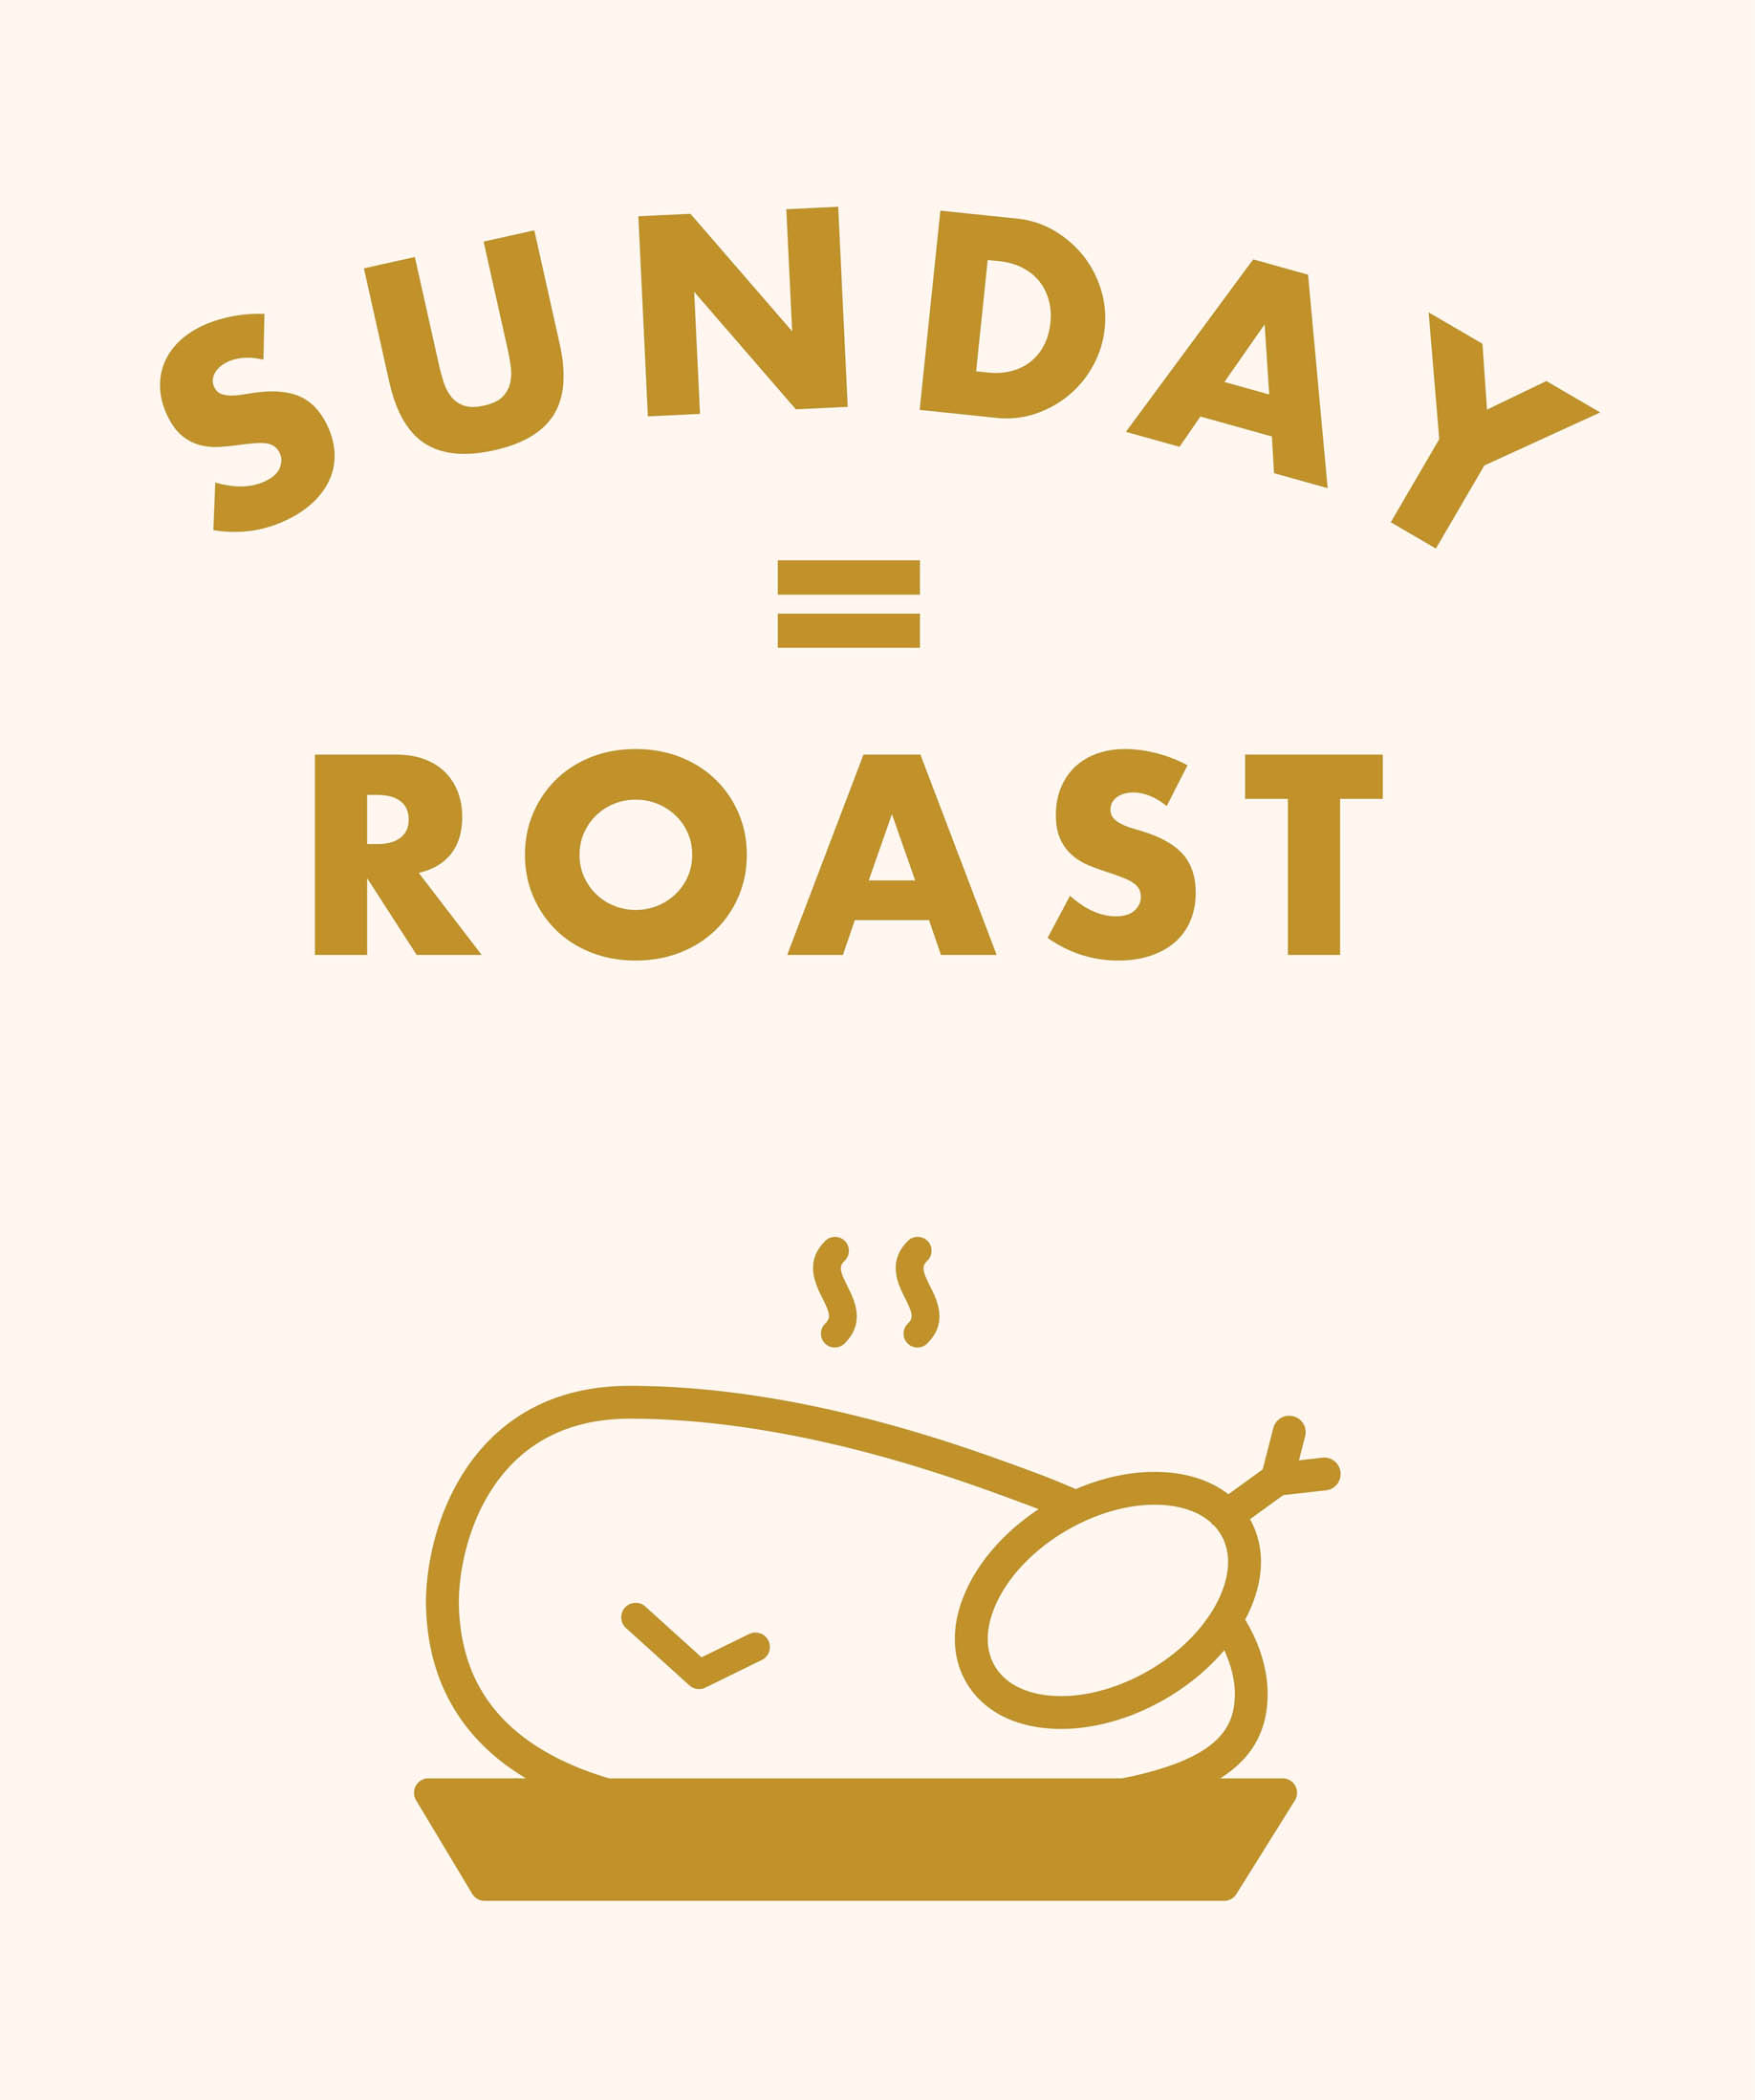 Upcoming Events - image 2019_Leveson_SundayRoast_Socials-05-new on https://theleveson.melbourne